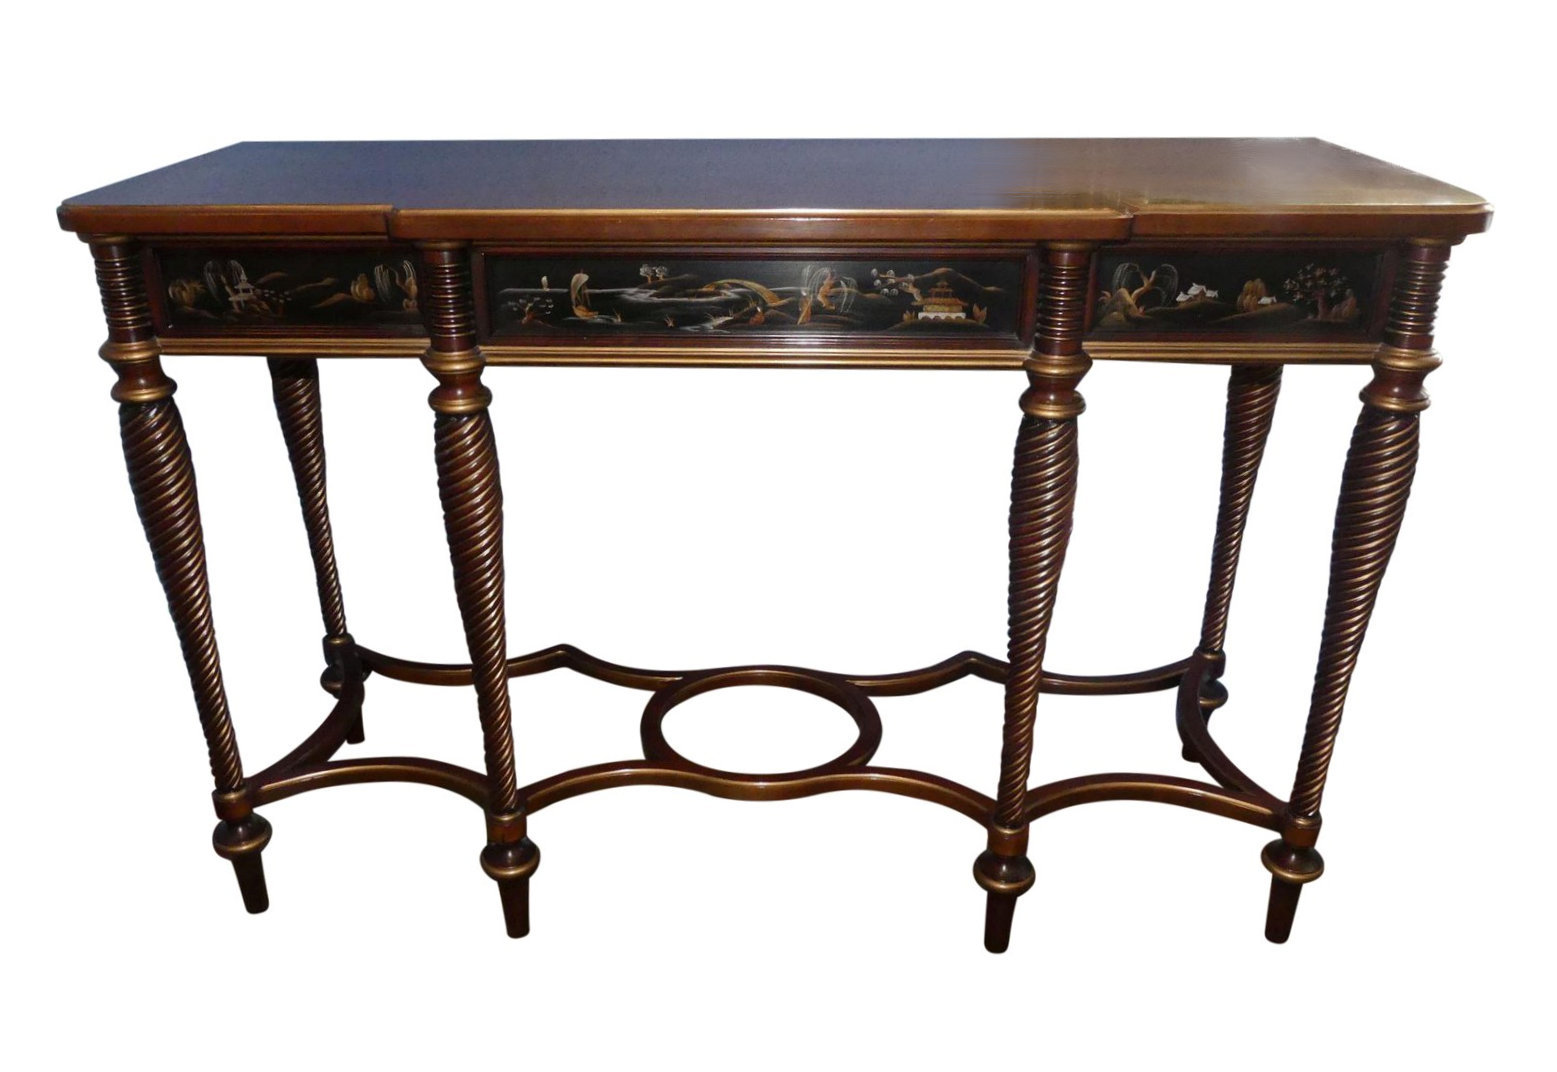 SOLD John Widdicomb Chinoiserie Console Table